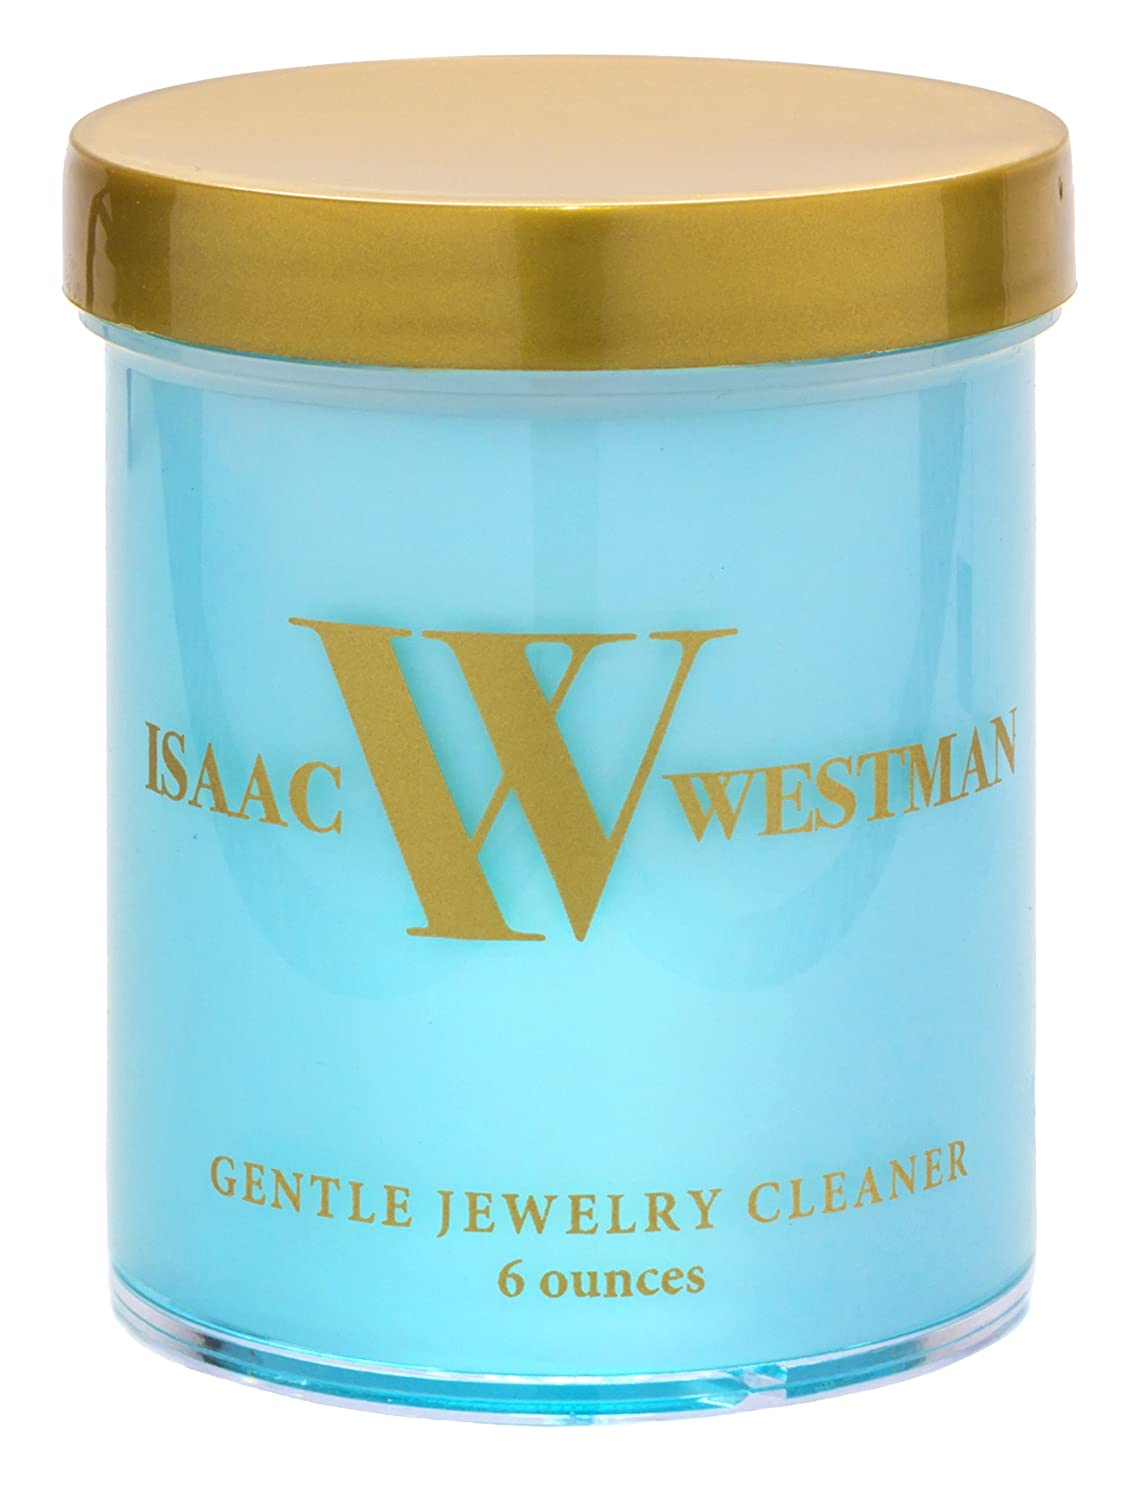 ISAAC WESTMAN Gentle Jewelry Cleaner Liquid | Safe Cleaning Solution for Fine & Fashion Jewelry | 6oz | Dip Tray & Brush ADPG cl25